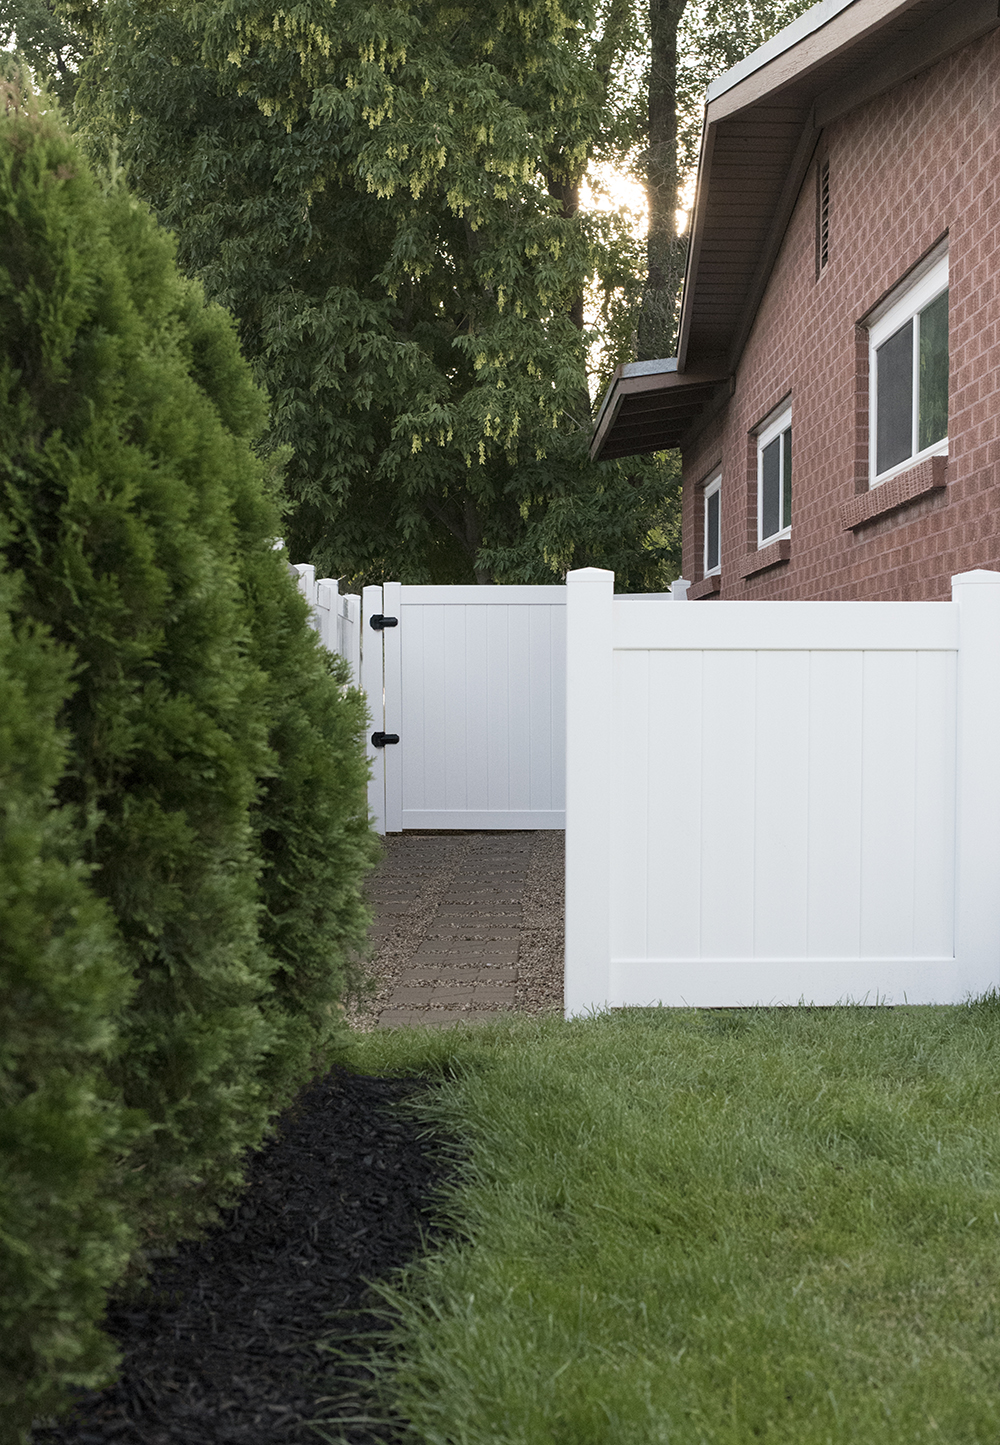 3 Day Project : Transforming Our Side Yard - roomfortuesday.com